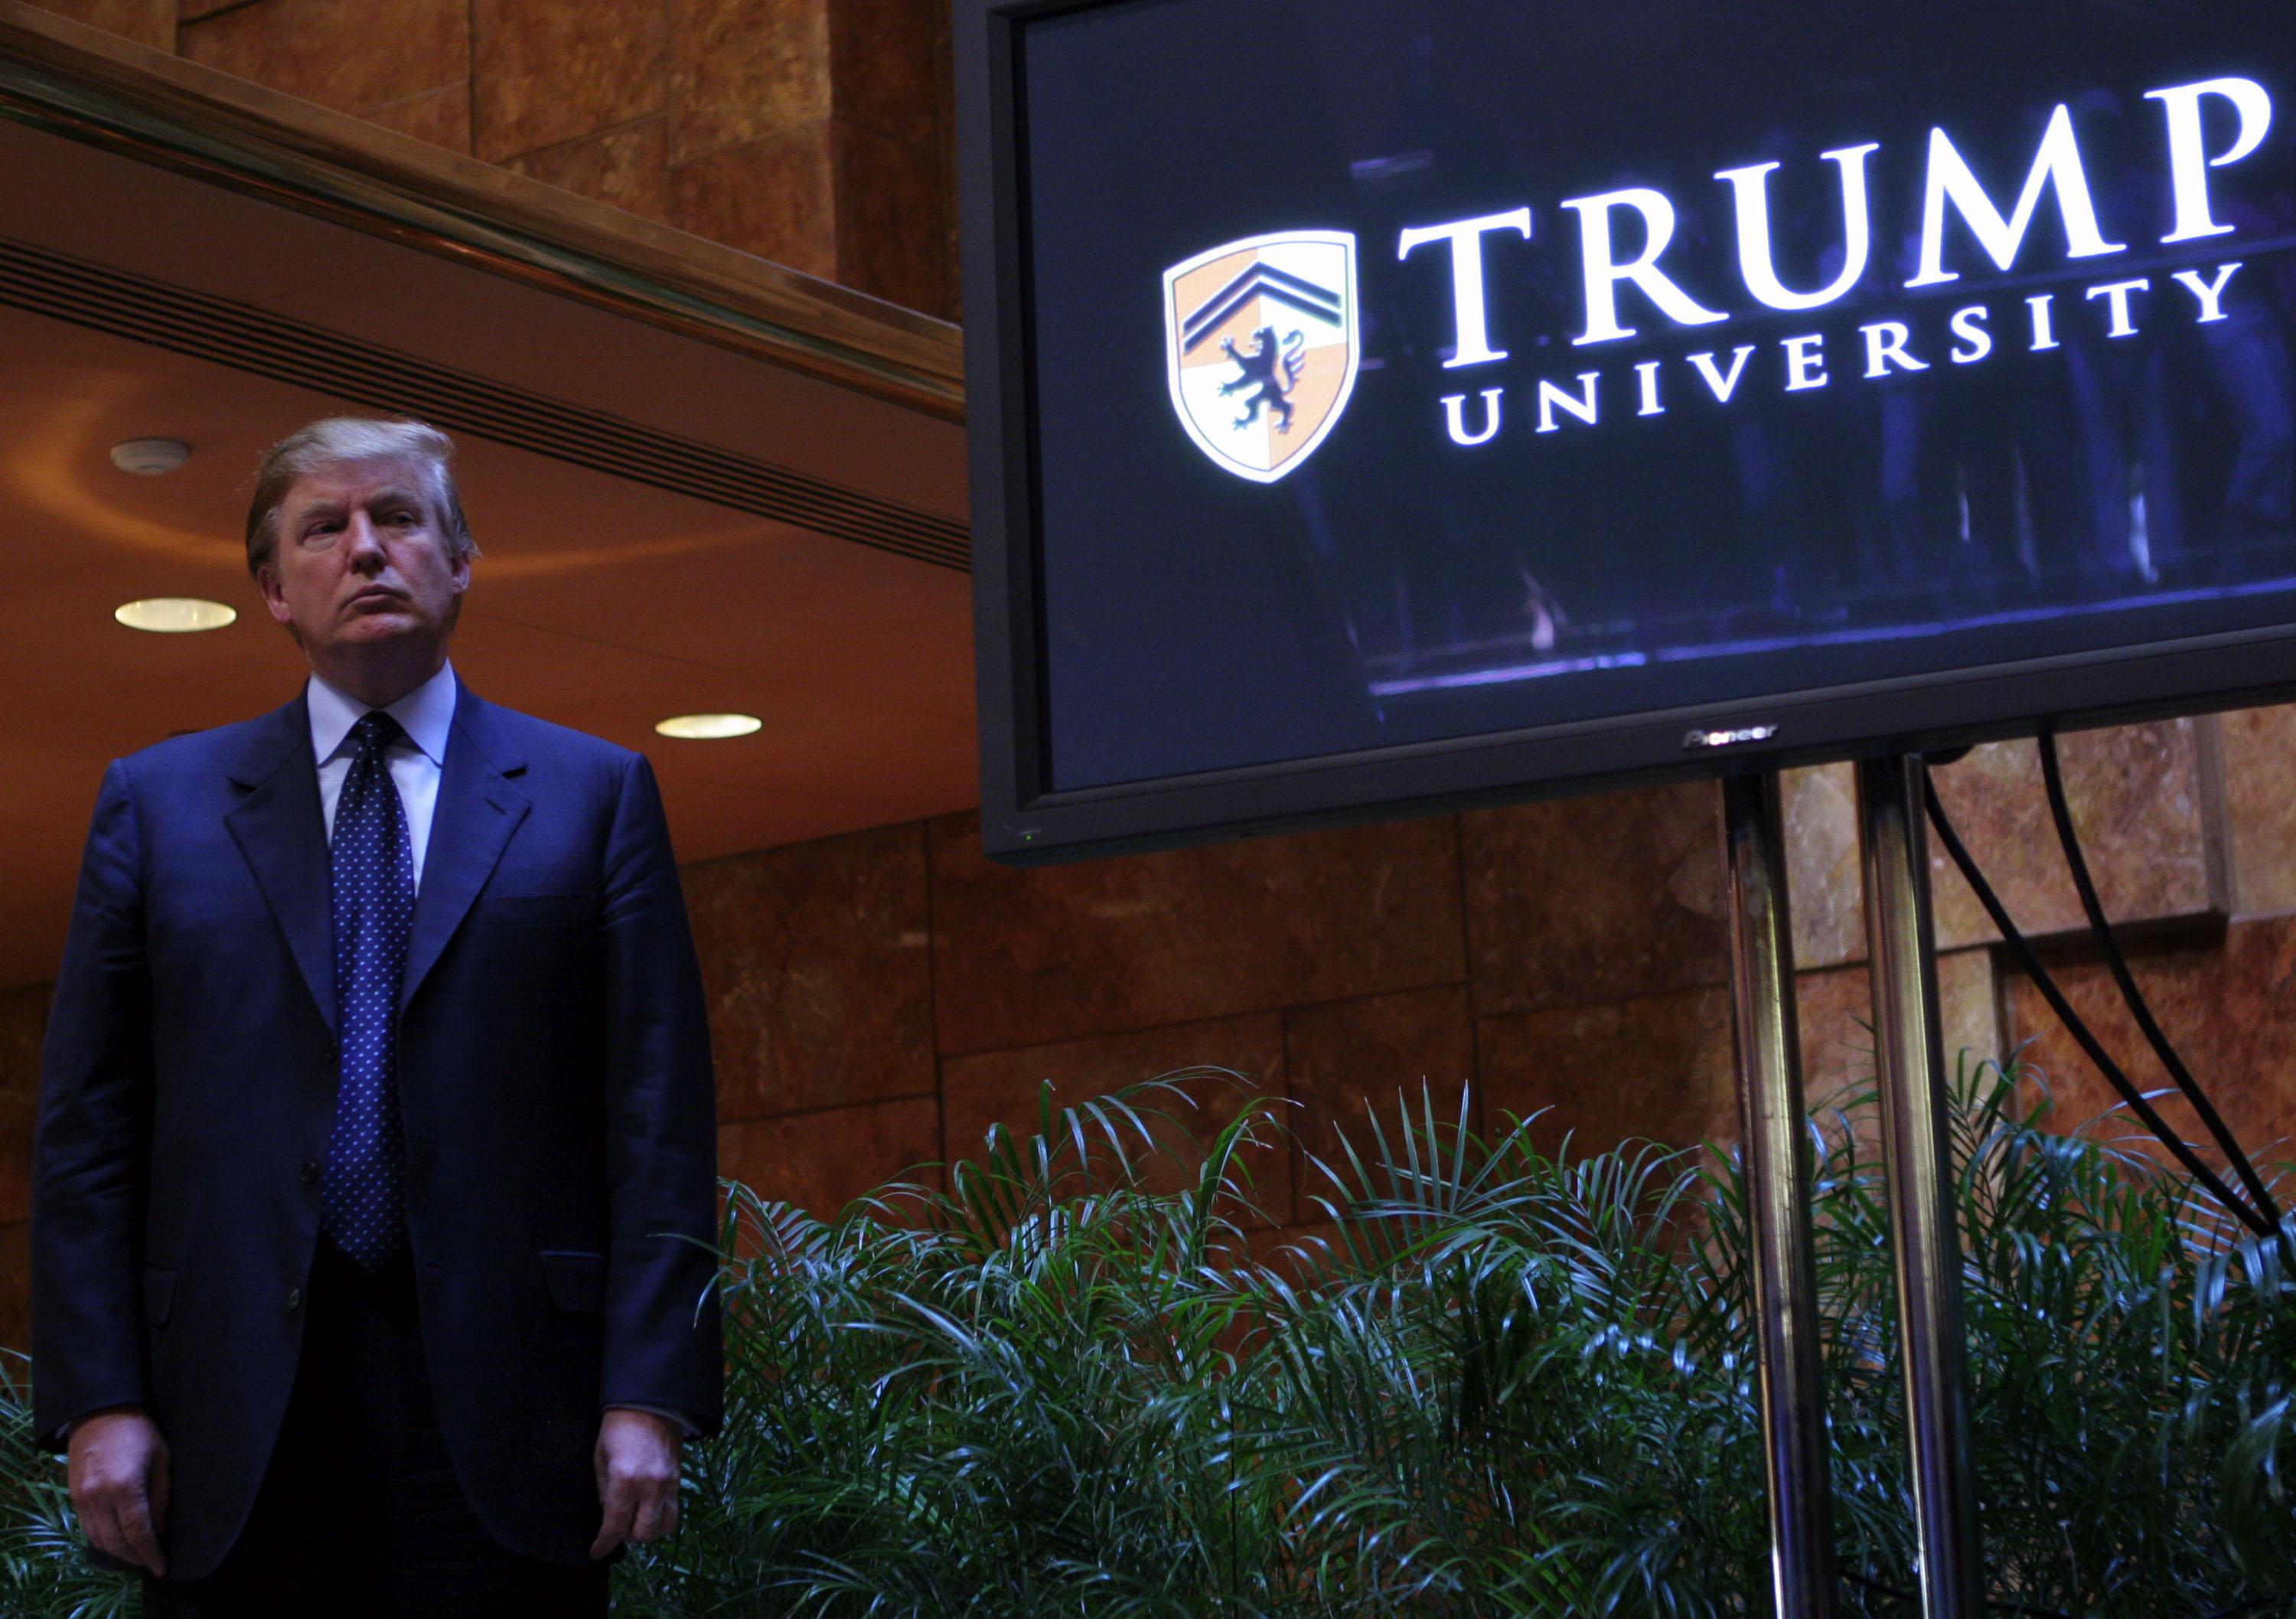 Trump University Lawsuit